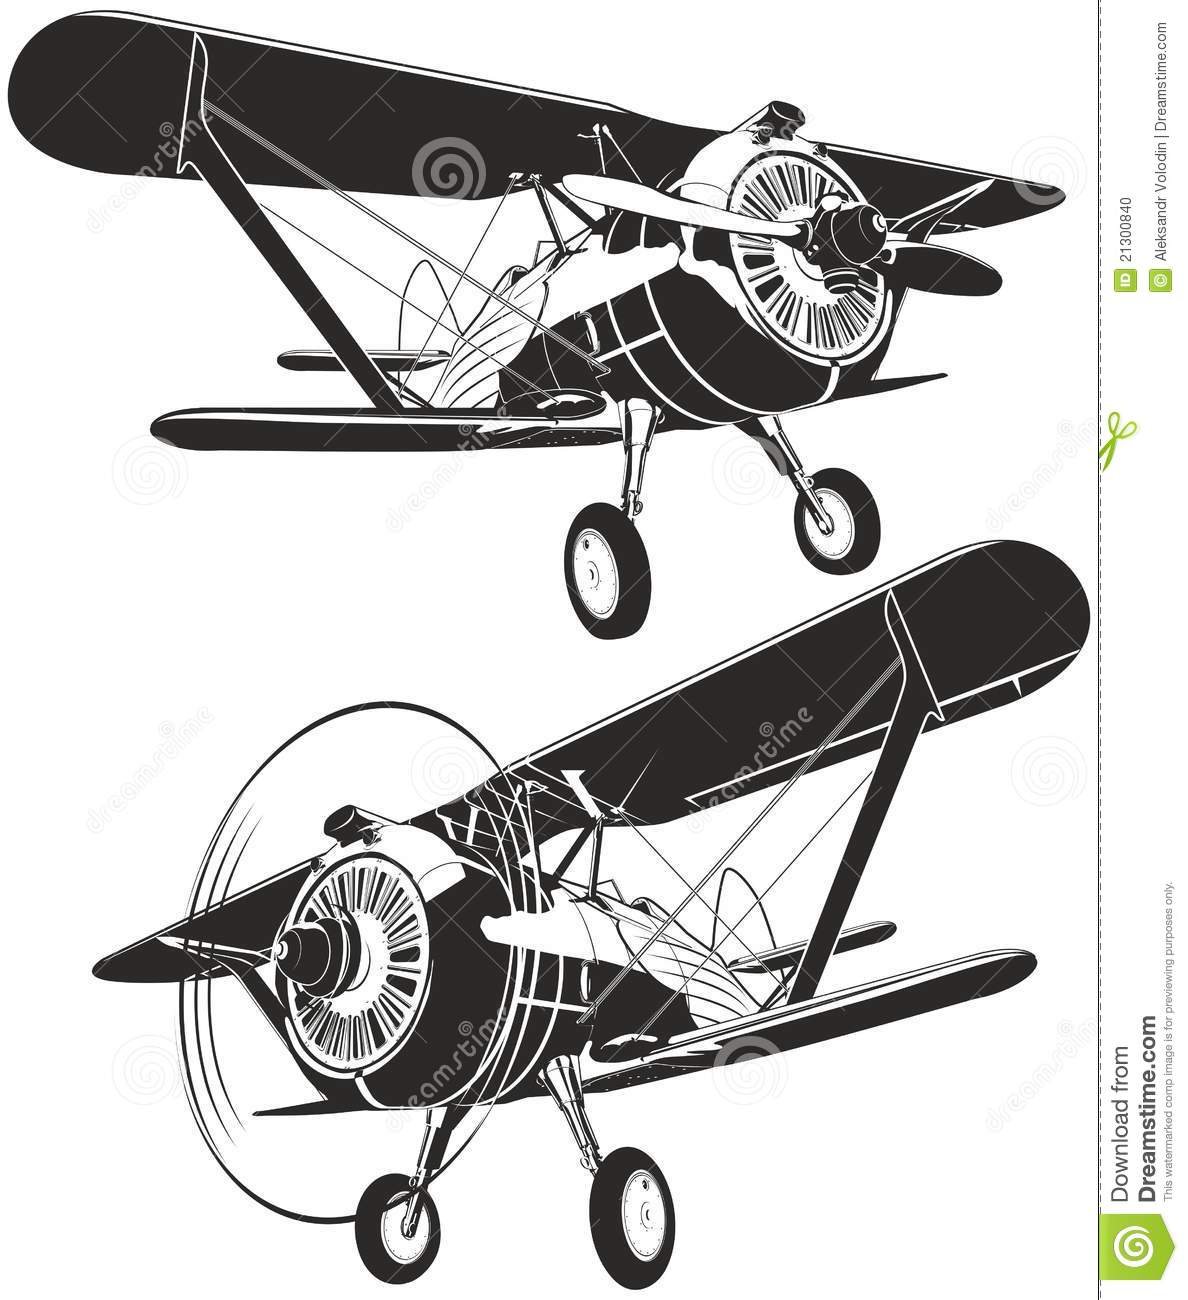 Vector Retro Biplane Stock Photo